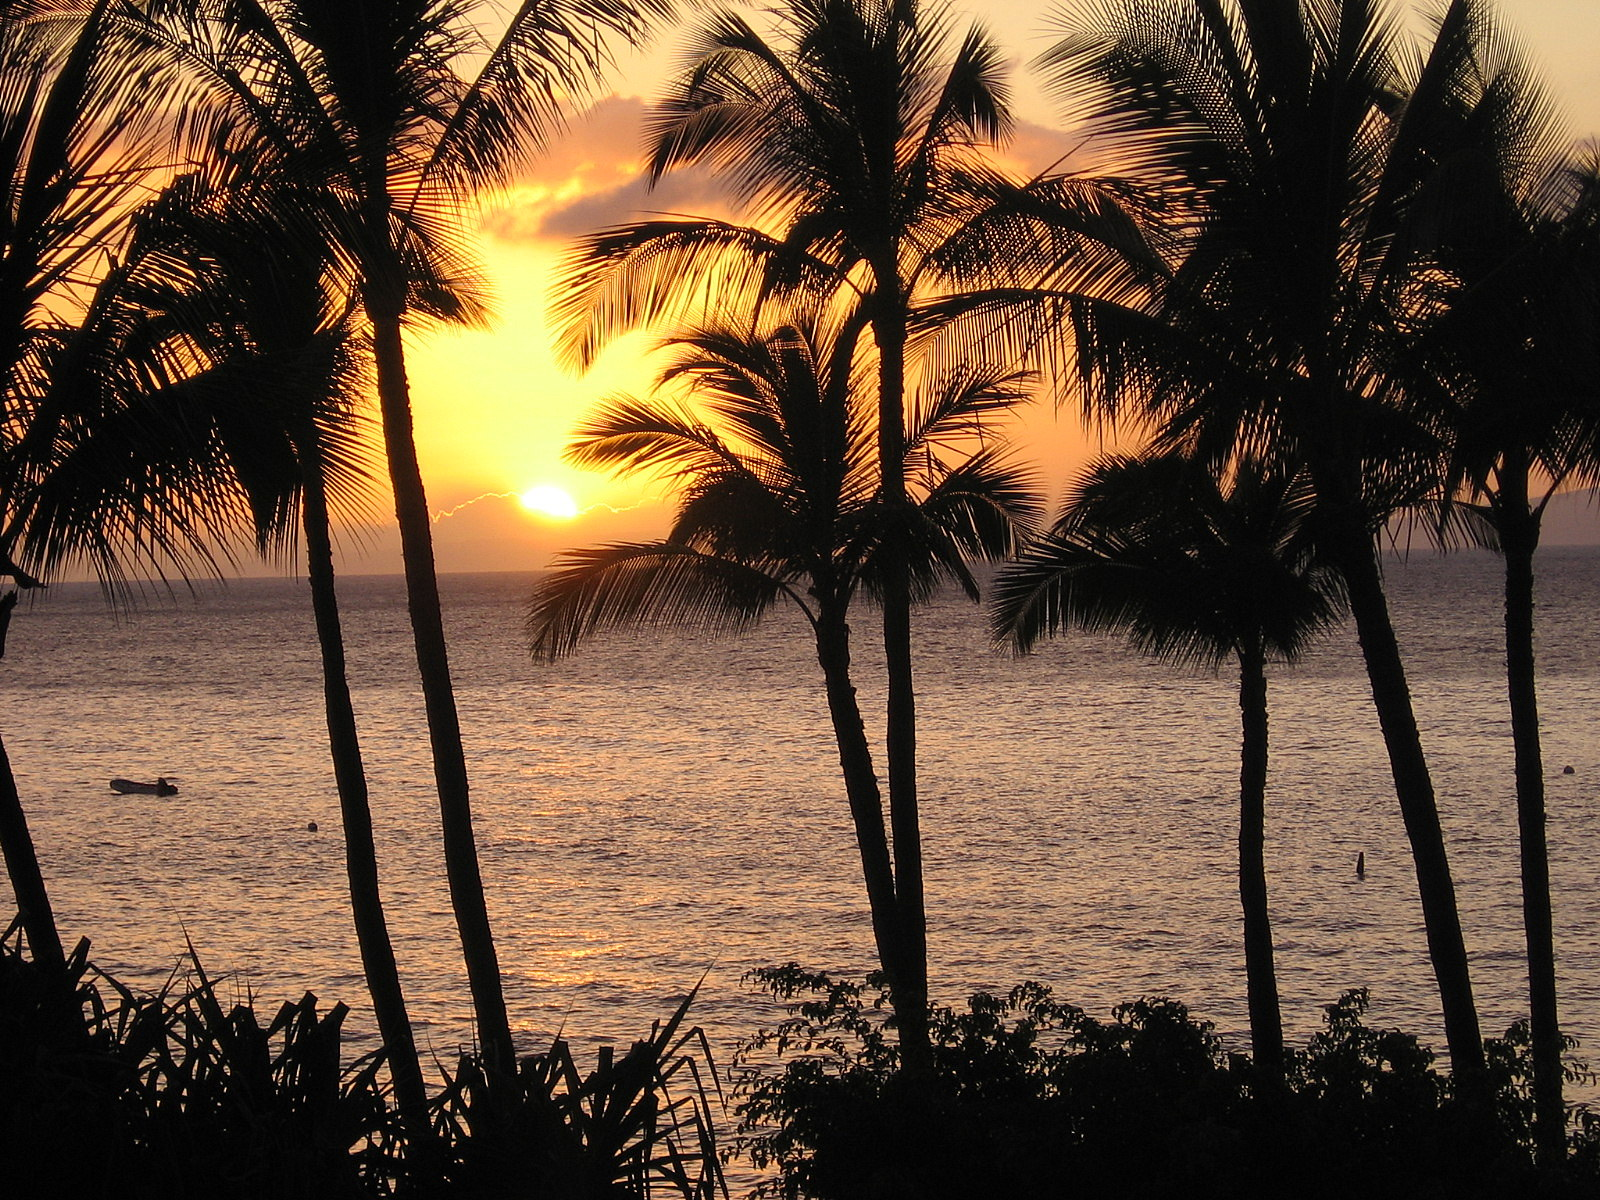 Free Wallpapers Palm Silhouette Big Island Hawaii Travel - palm silhouette big island hawaii wallpapers